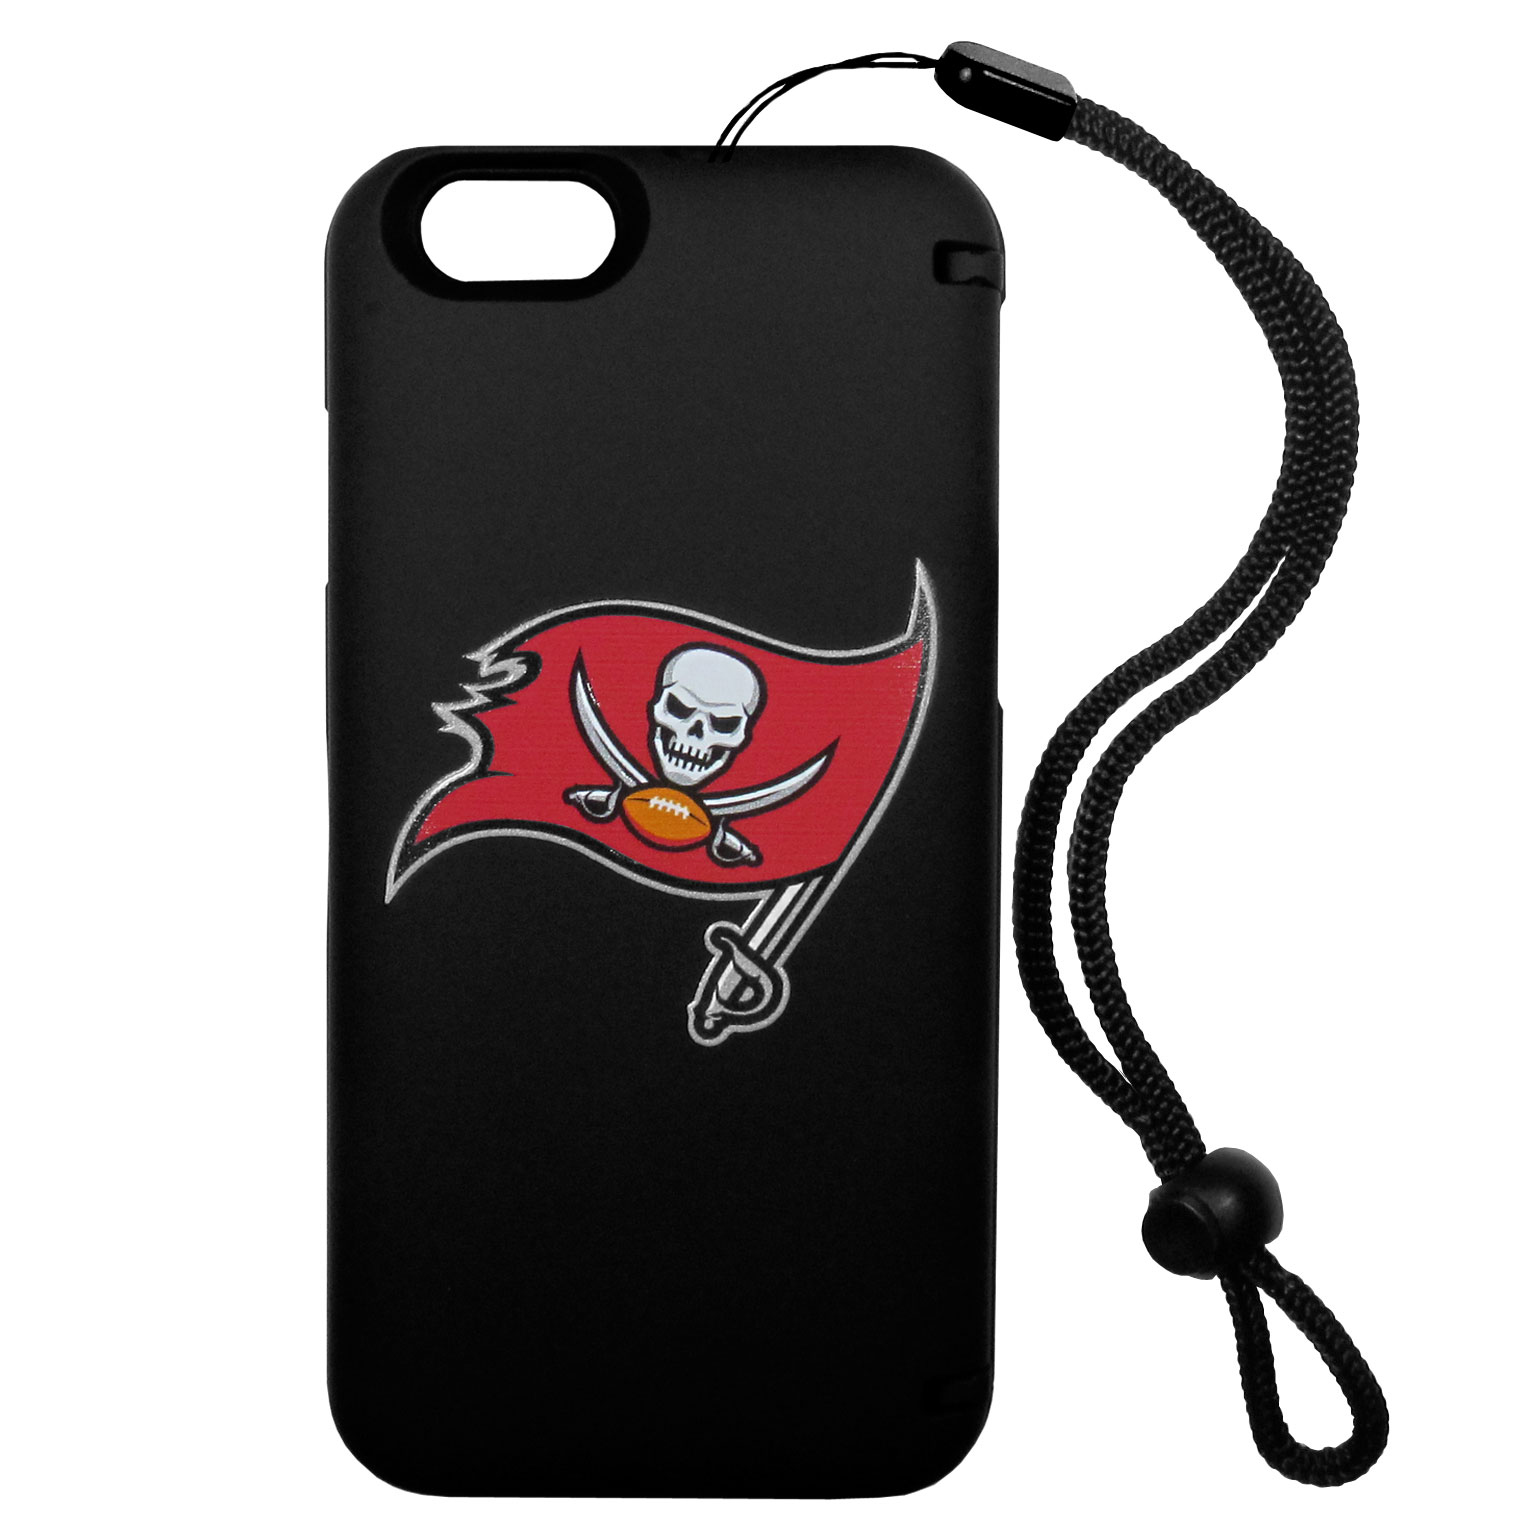 Tampa Bay Buccaneers iPhone 6 Plus Everything Case - This case really does have everything but the kitchen sink! The hidden compartment lets you keep your cards, money and tickets to the big game safe and secure and has a compact mirror so you can make sure your game face is ready to go. It also comes with a kickstand to make chatting and watching videos a breeze. The wrist strap allows you to travel with ease with your everything case. If that's not enough, it also comes with the Tampa Bay Buccaneers logo printed in expert detail on the front.